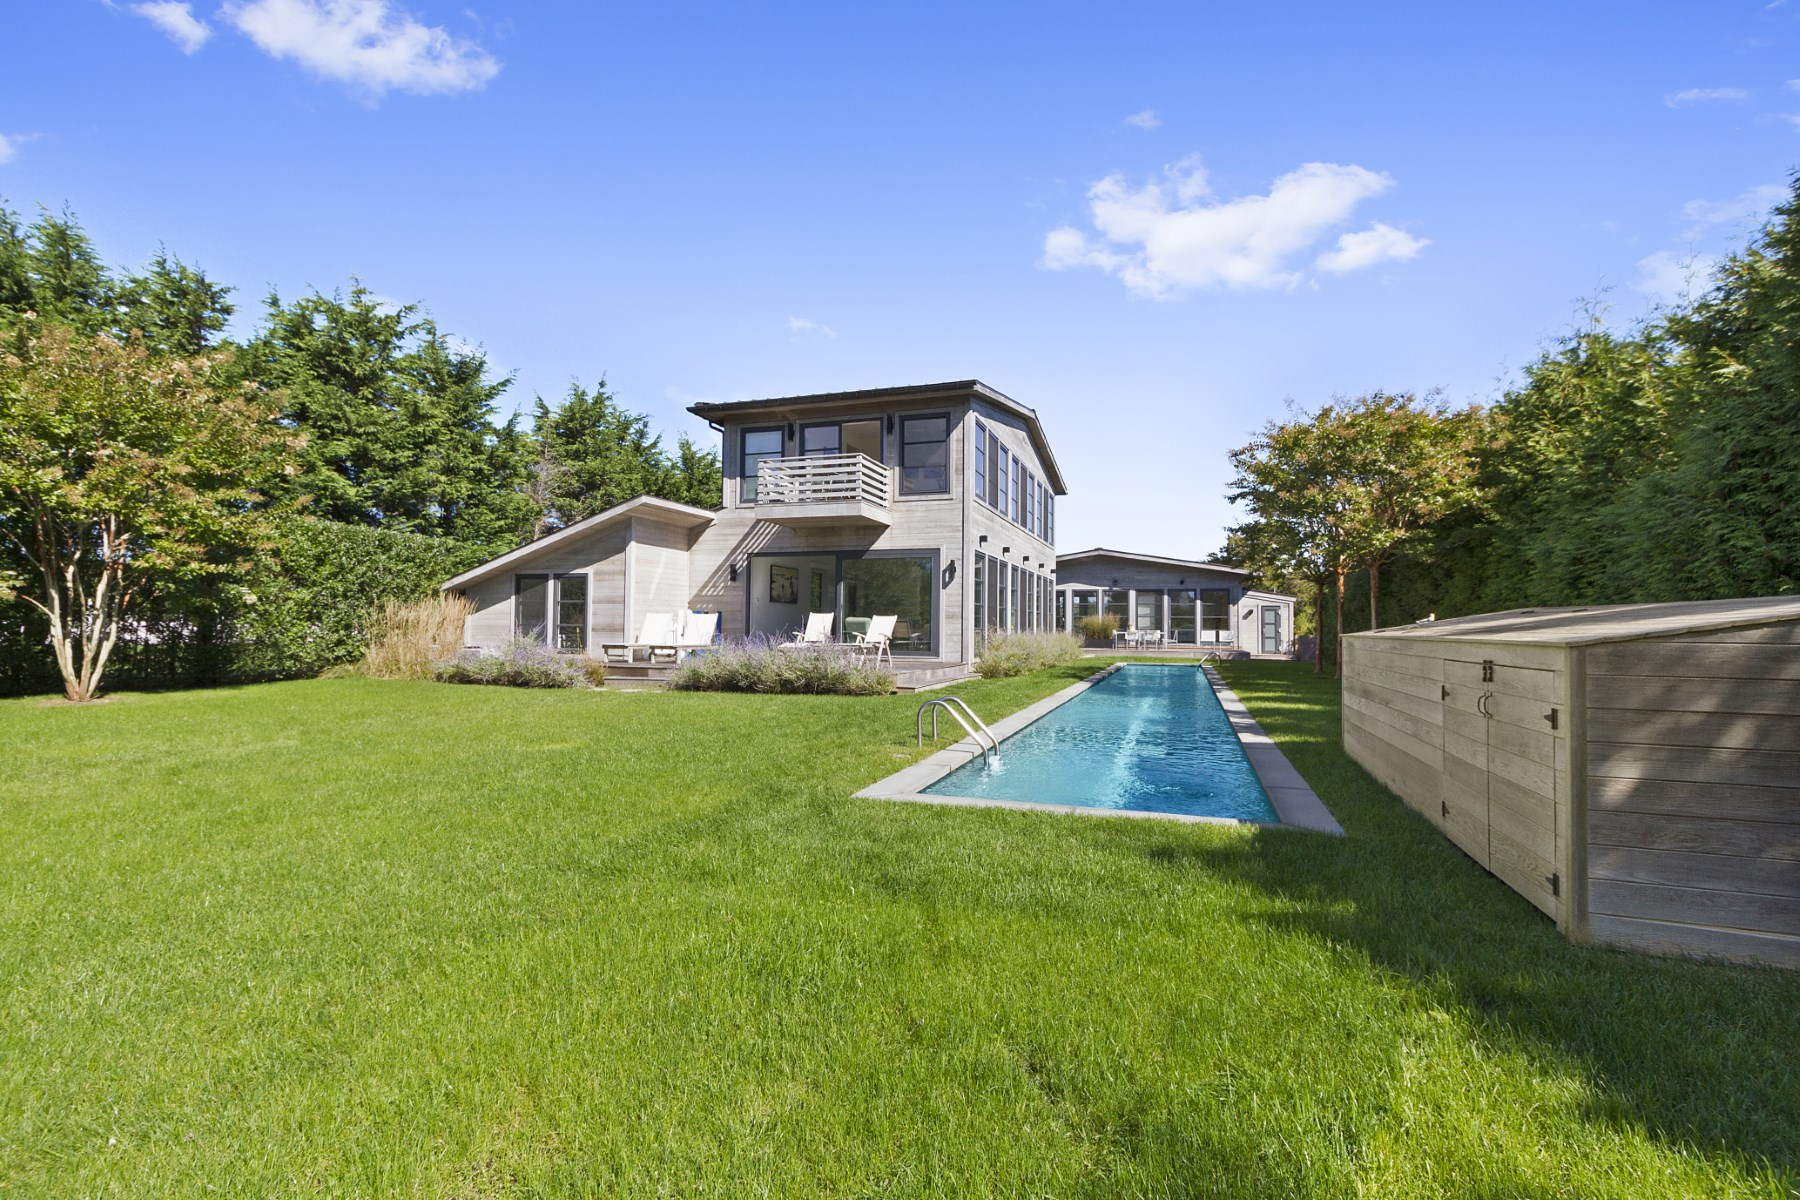 Single Family Home for Sale at Modern Compound, Immediate Ocean Access 108 Town Line Road Sagaponack, New York 11962 United States